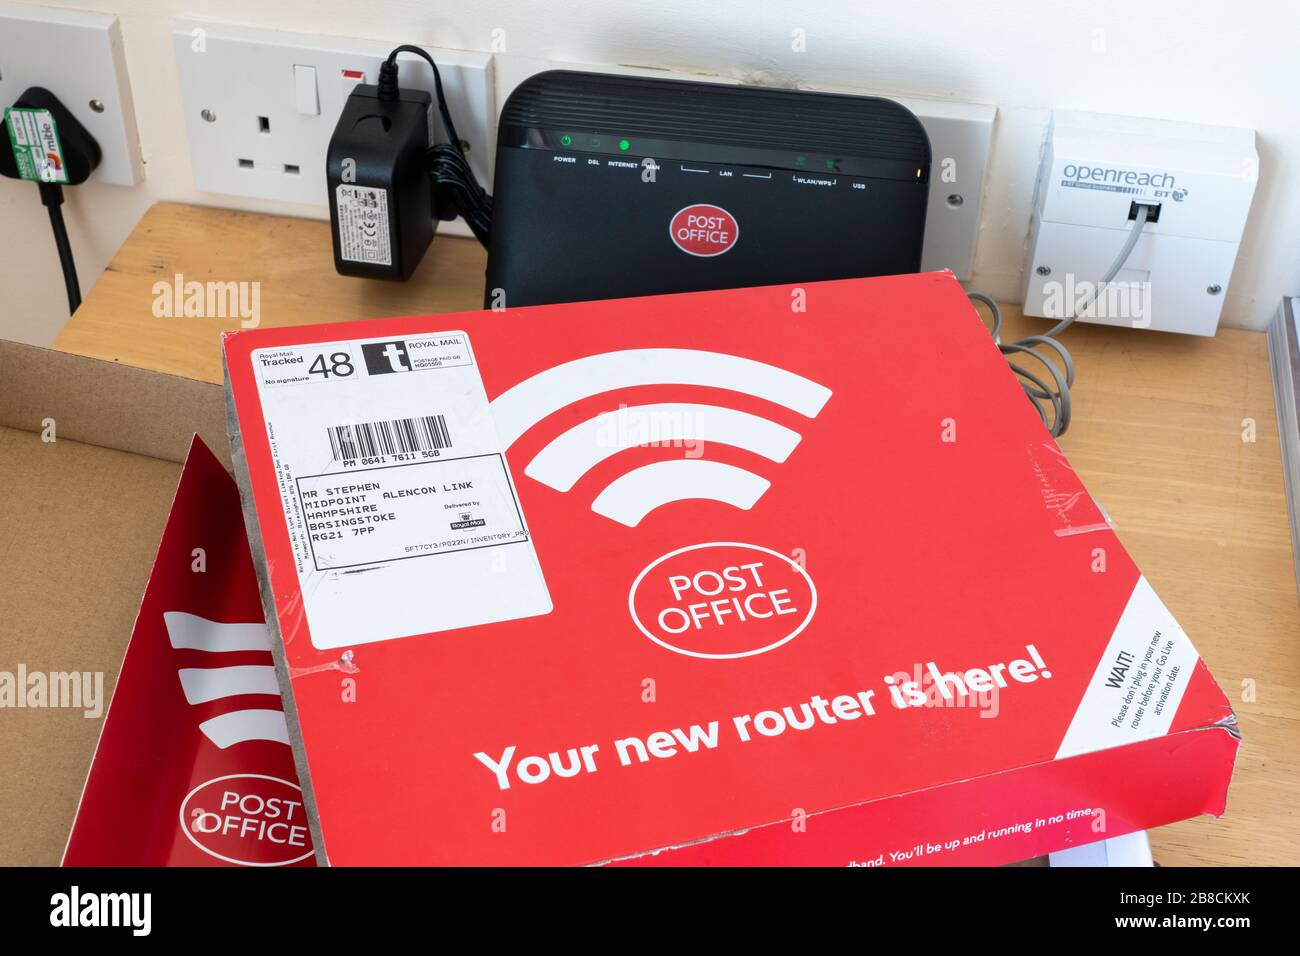 A broadband internet router connected to a wall socket sent by the Post Office - an internet provider -  to a home user in the UK Stock Photo